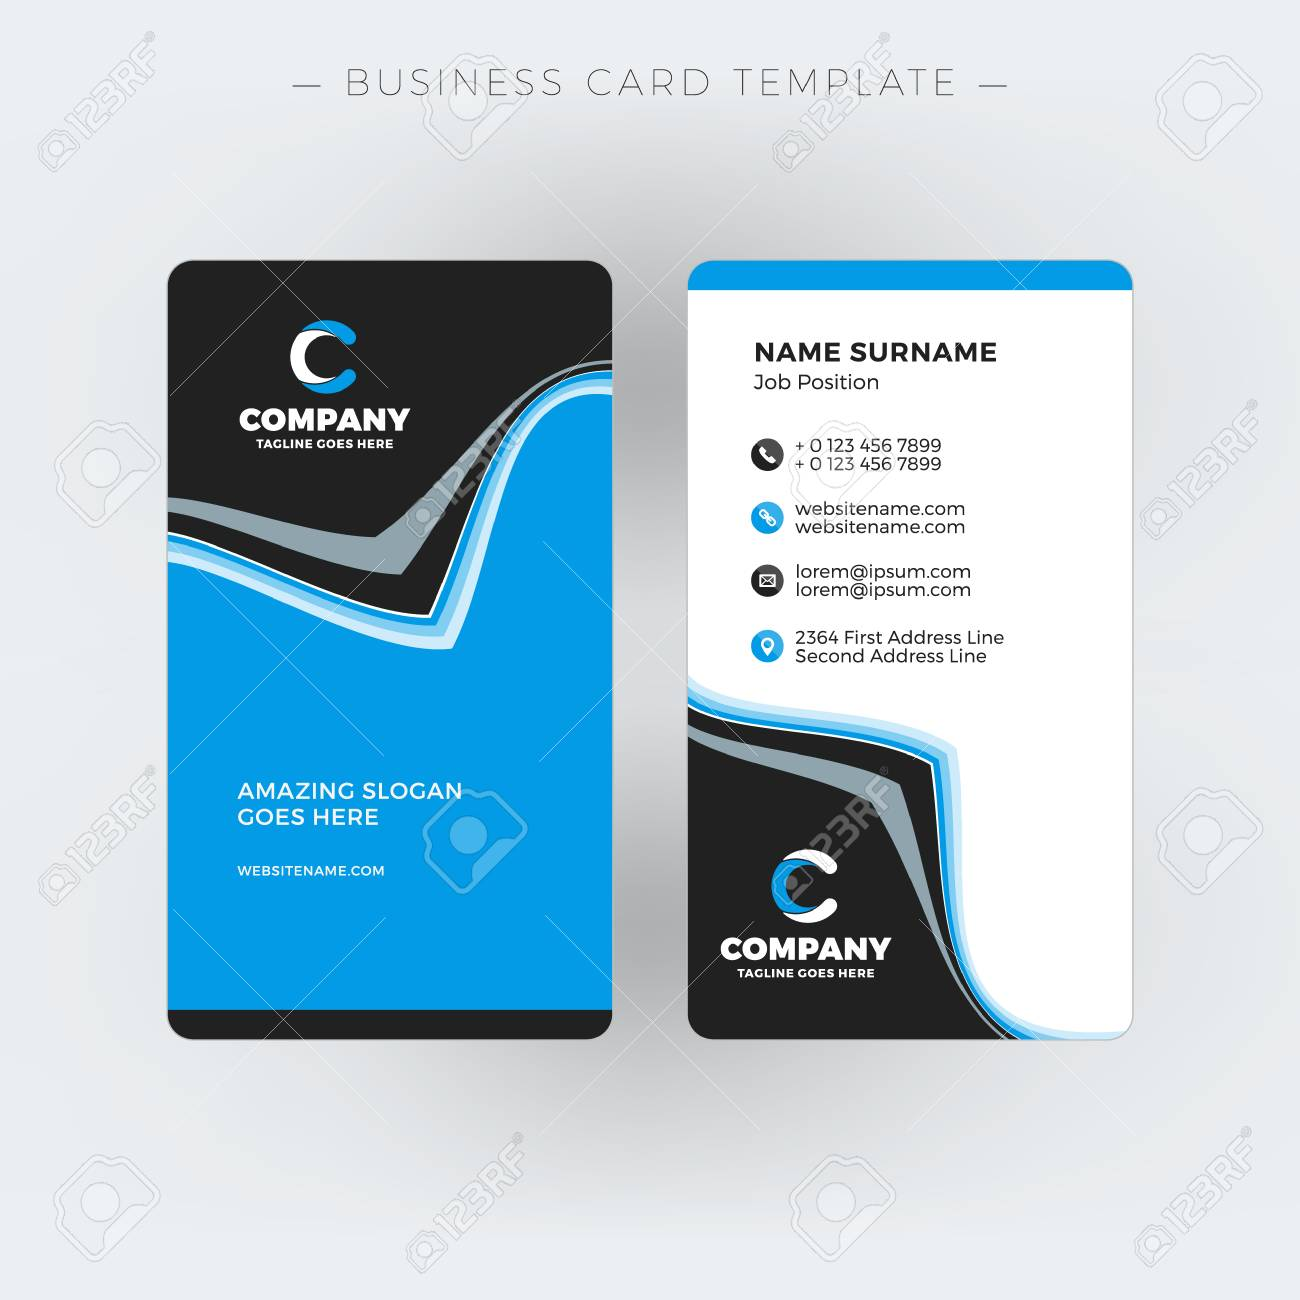 Vertical Double Sided Business Card Template Vector Illustration